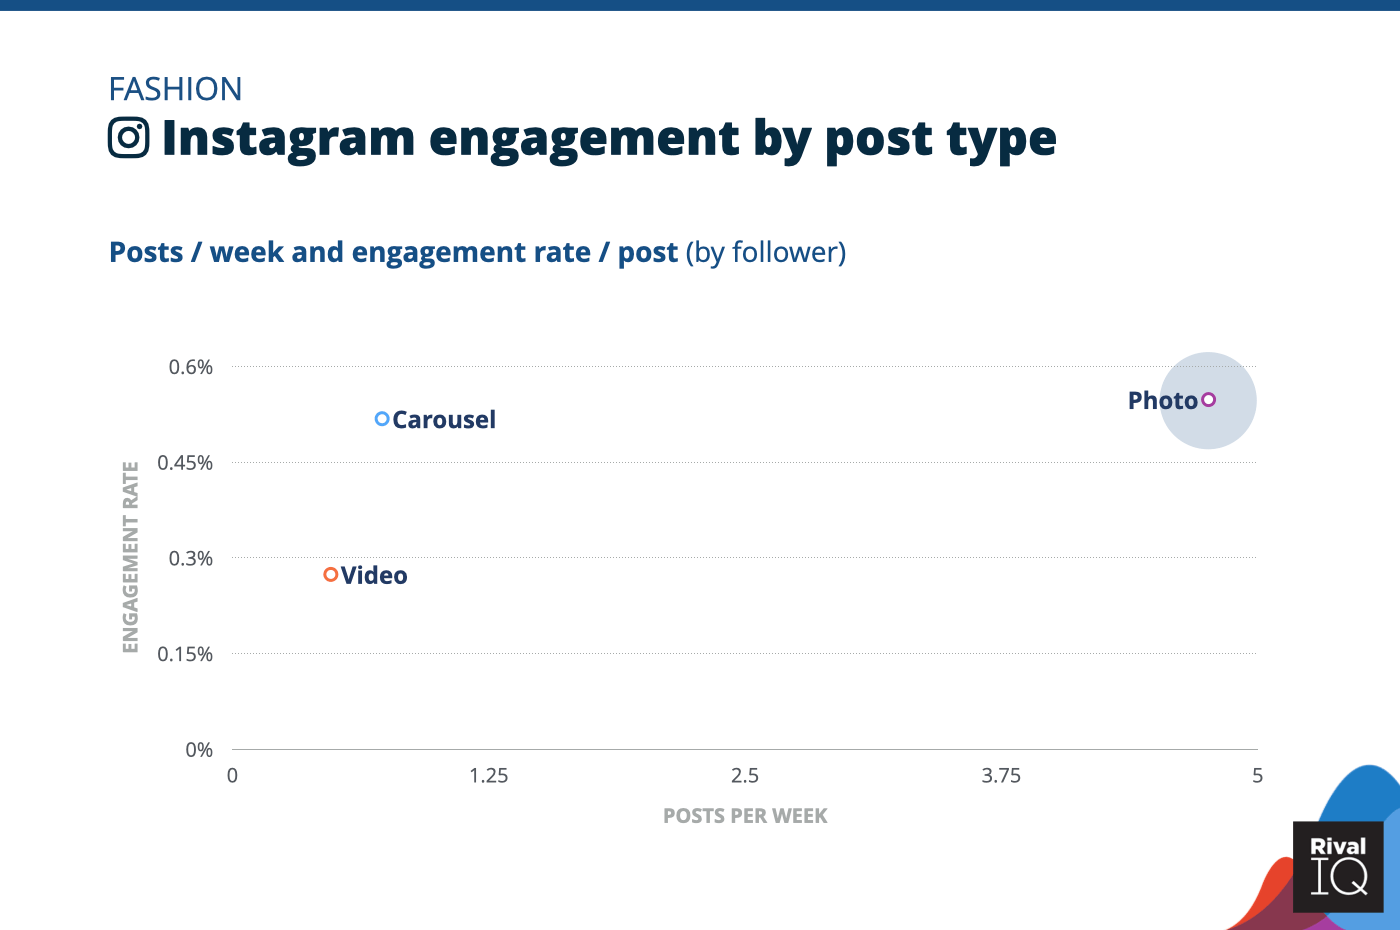 Chart of Instagram posts per week and engagement rate by post type, Fashion